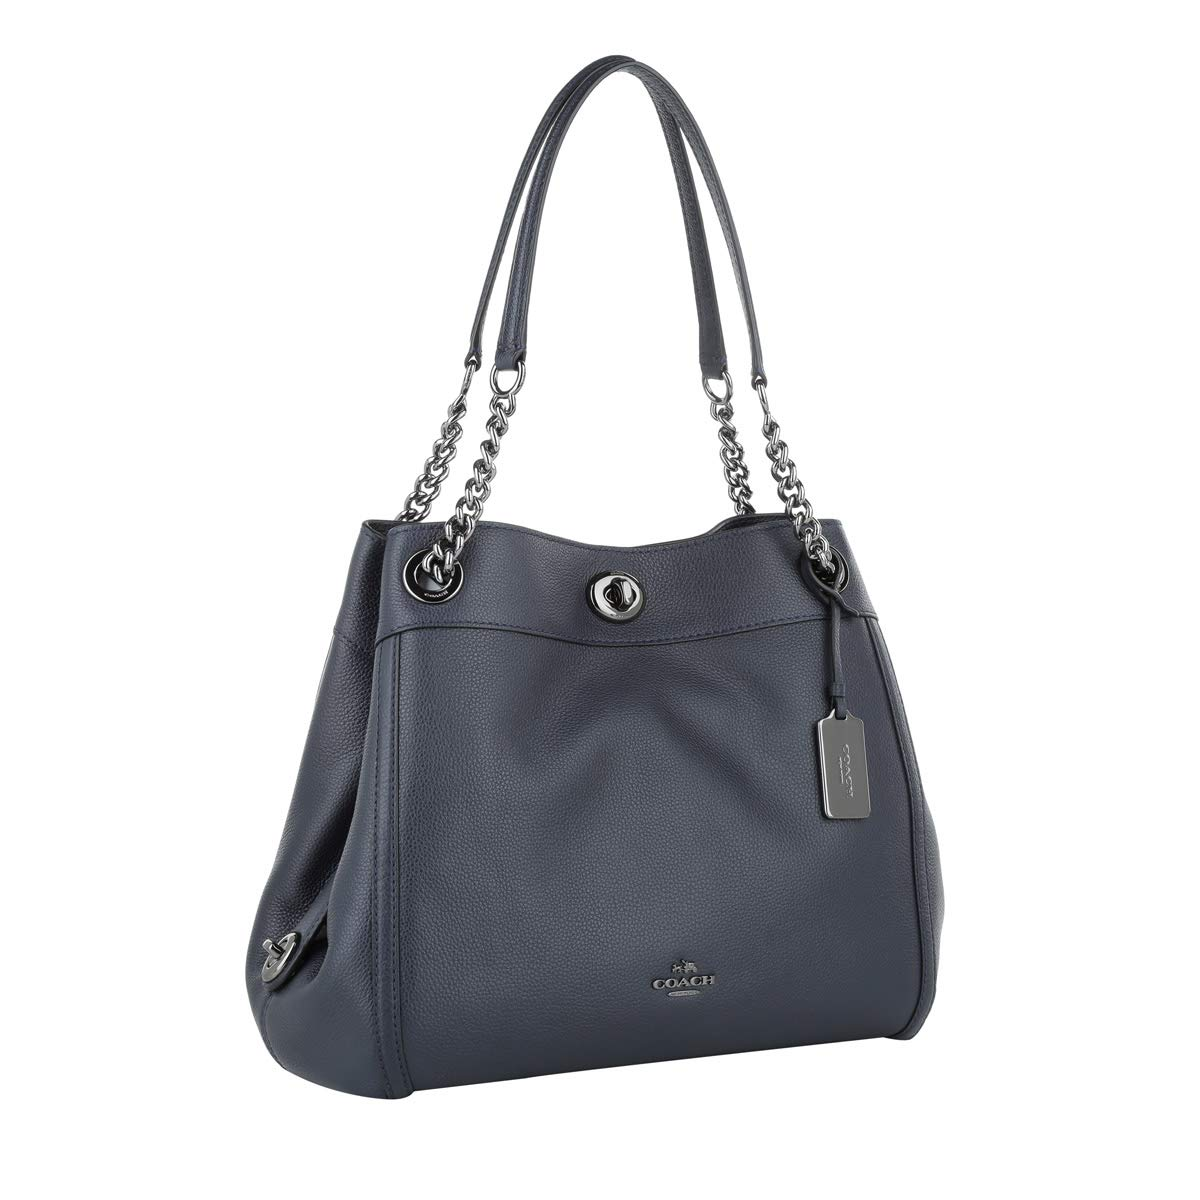 37018bf42 COACH Turnlock Edie Shoulder Bag in Pebble Leather: Amazon.co.uk: Shoes &  Bags